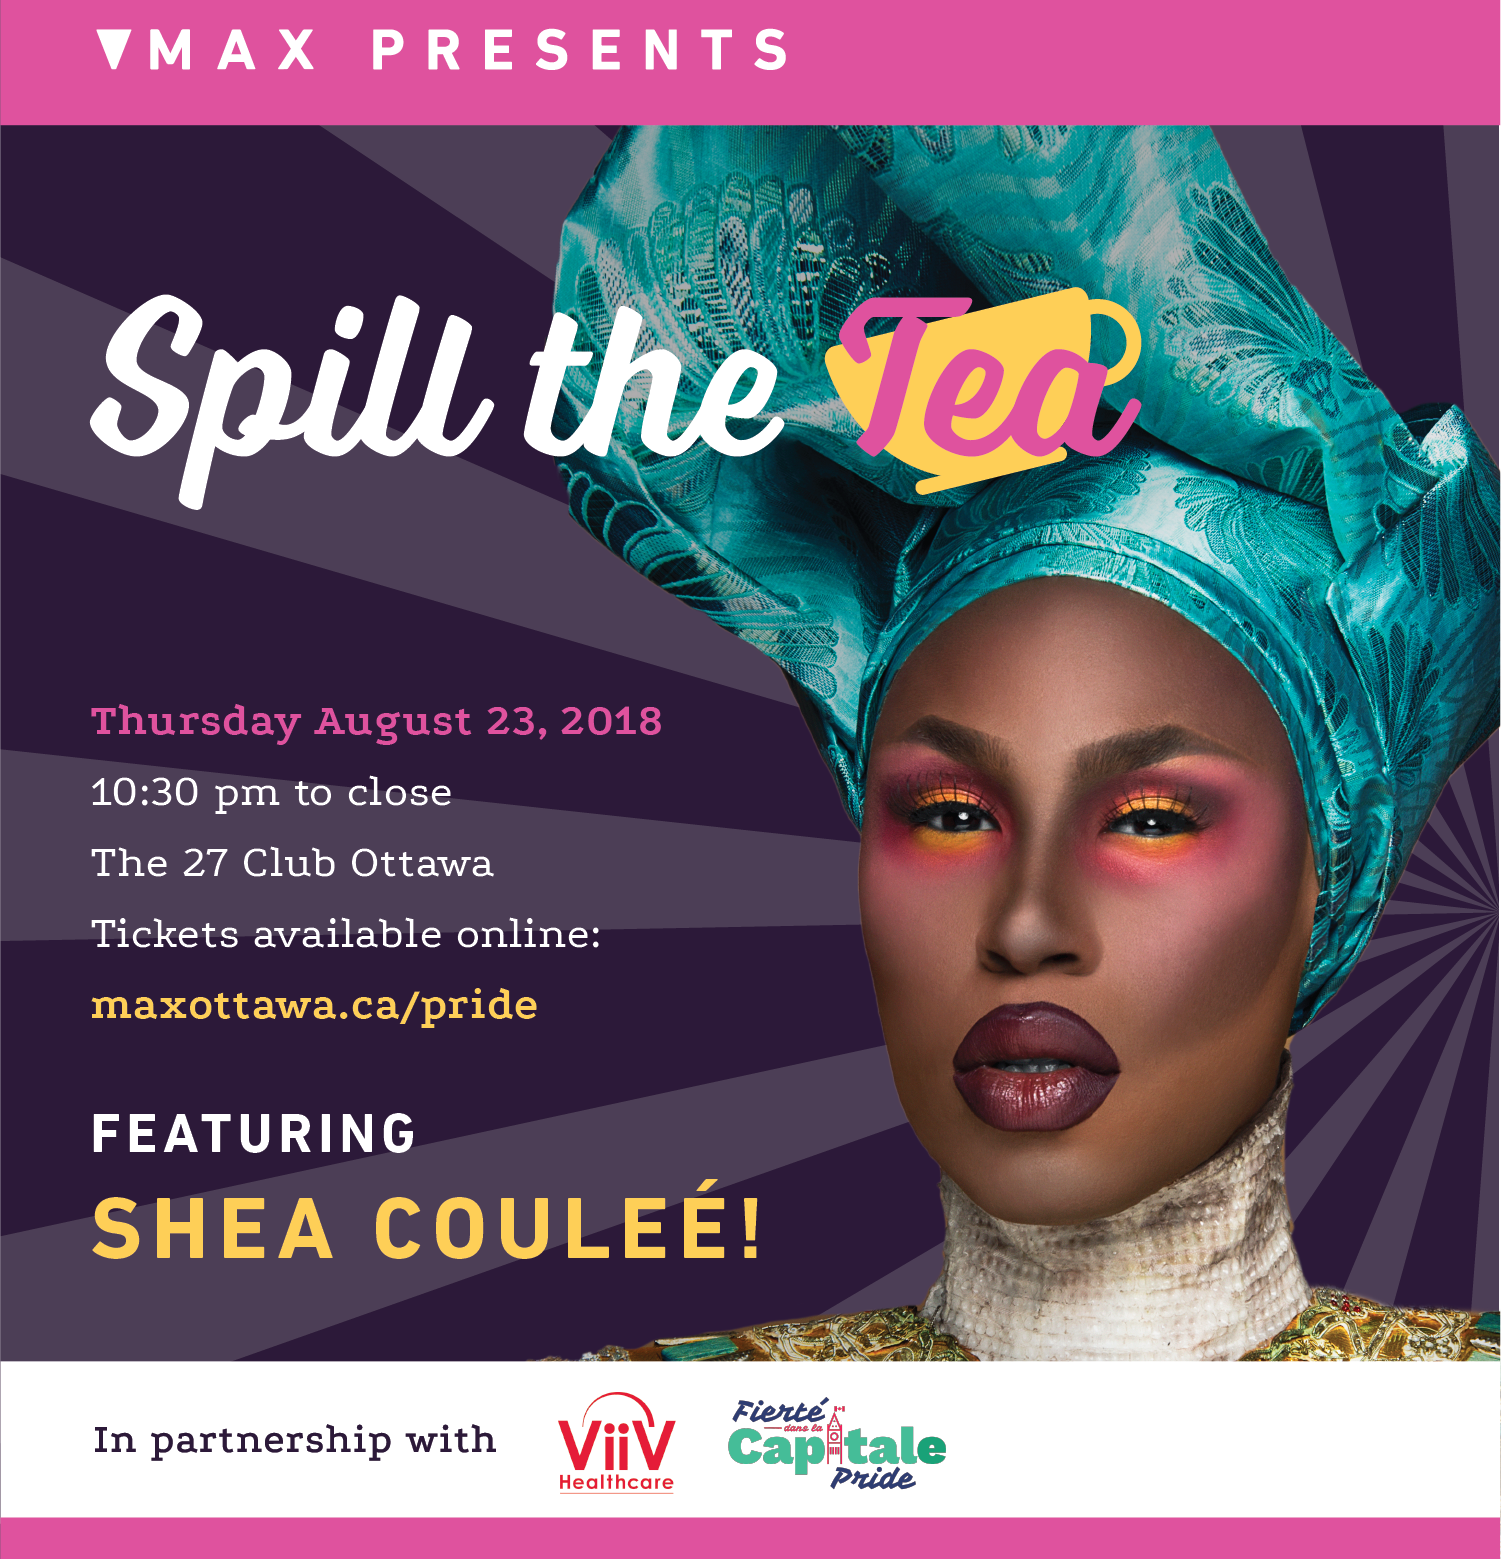 Spill the Tea ad featuring Shea Coulee Drag Queen harm reduction